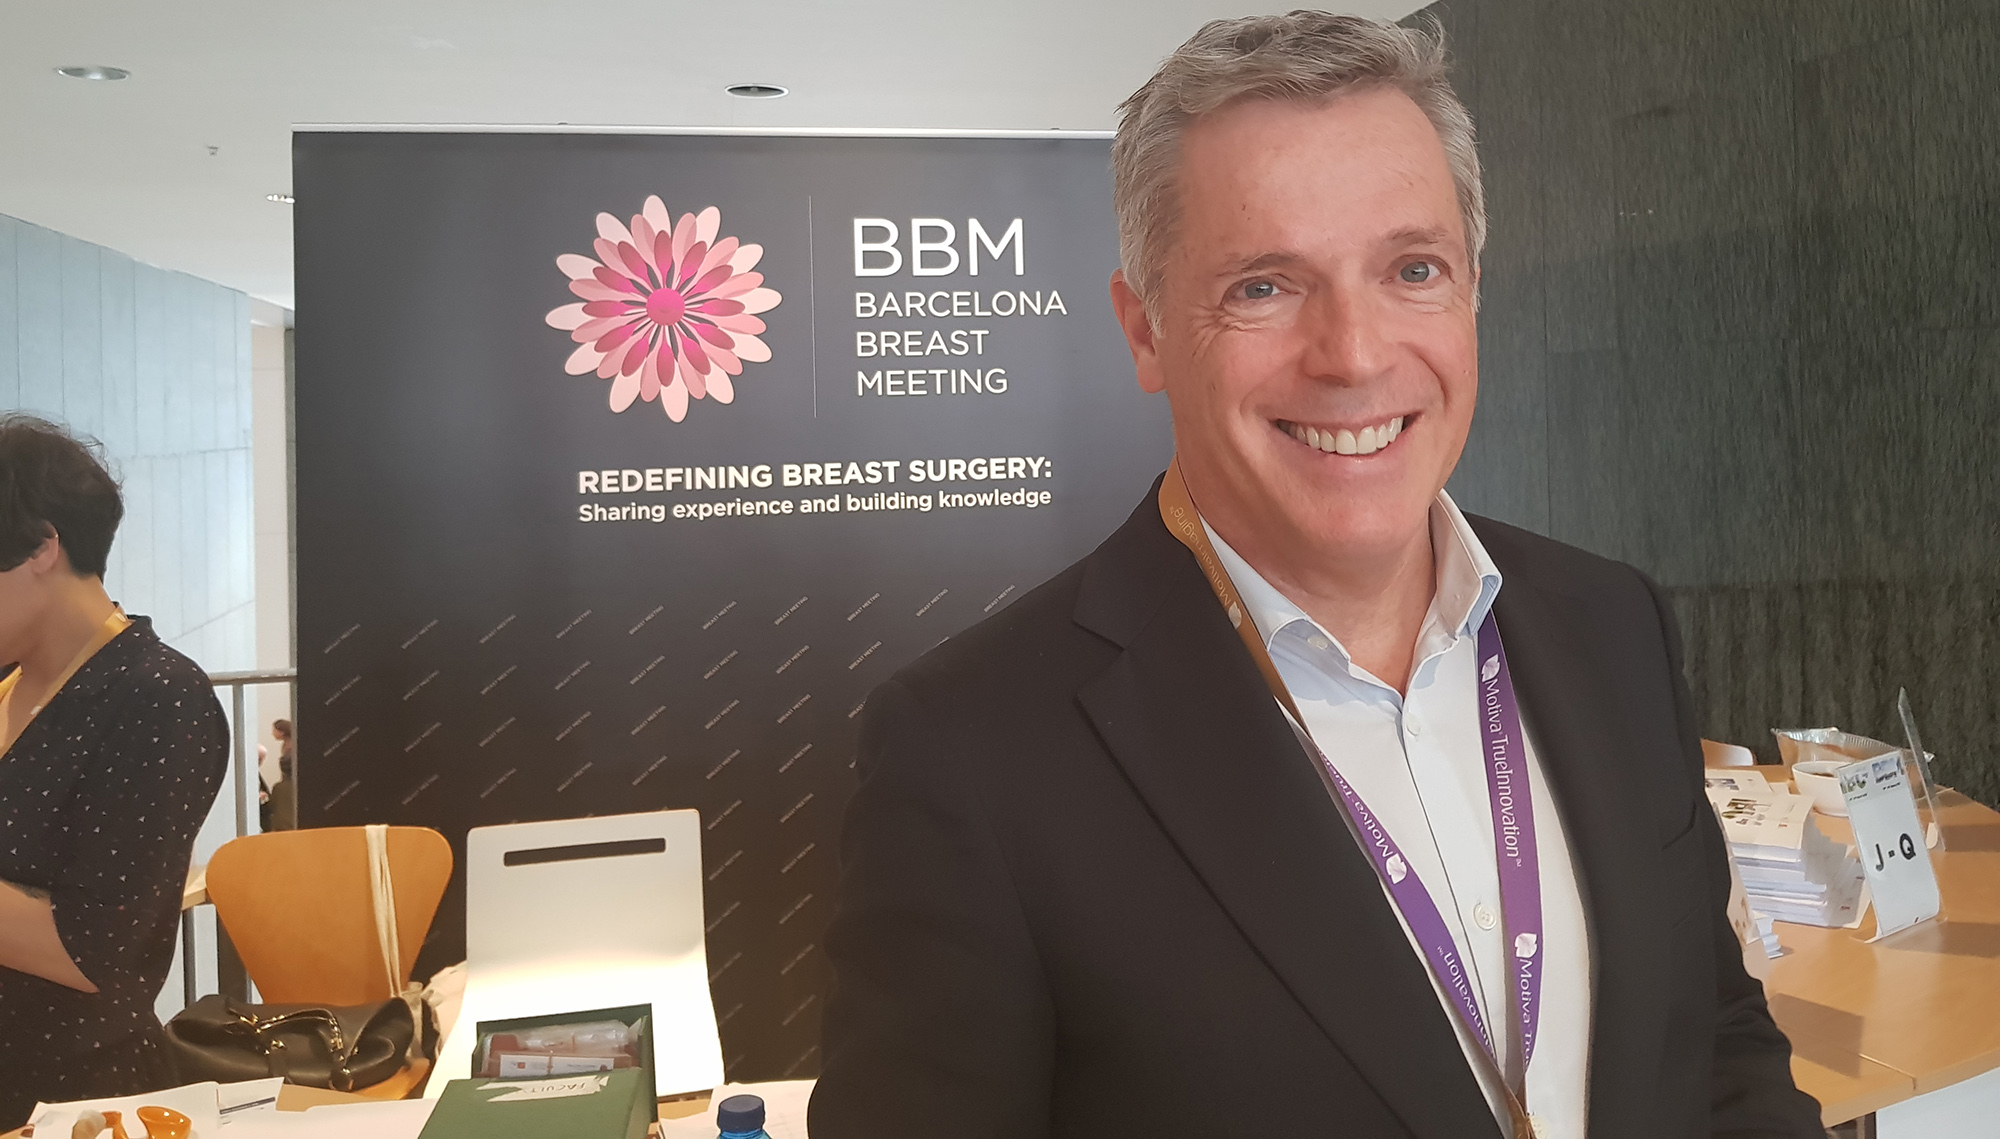 Barcelona Breast Meeting (BBM 2019)